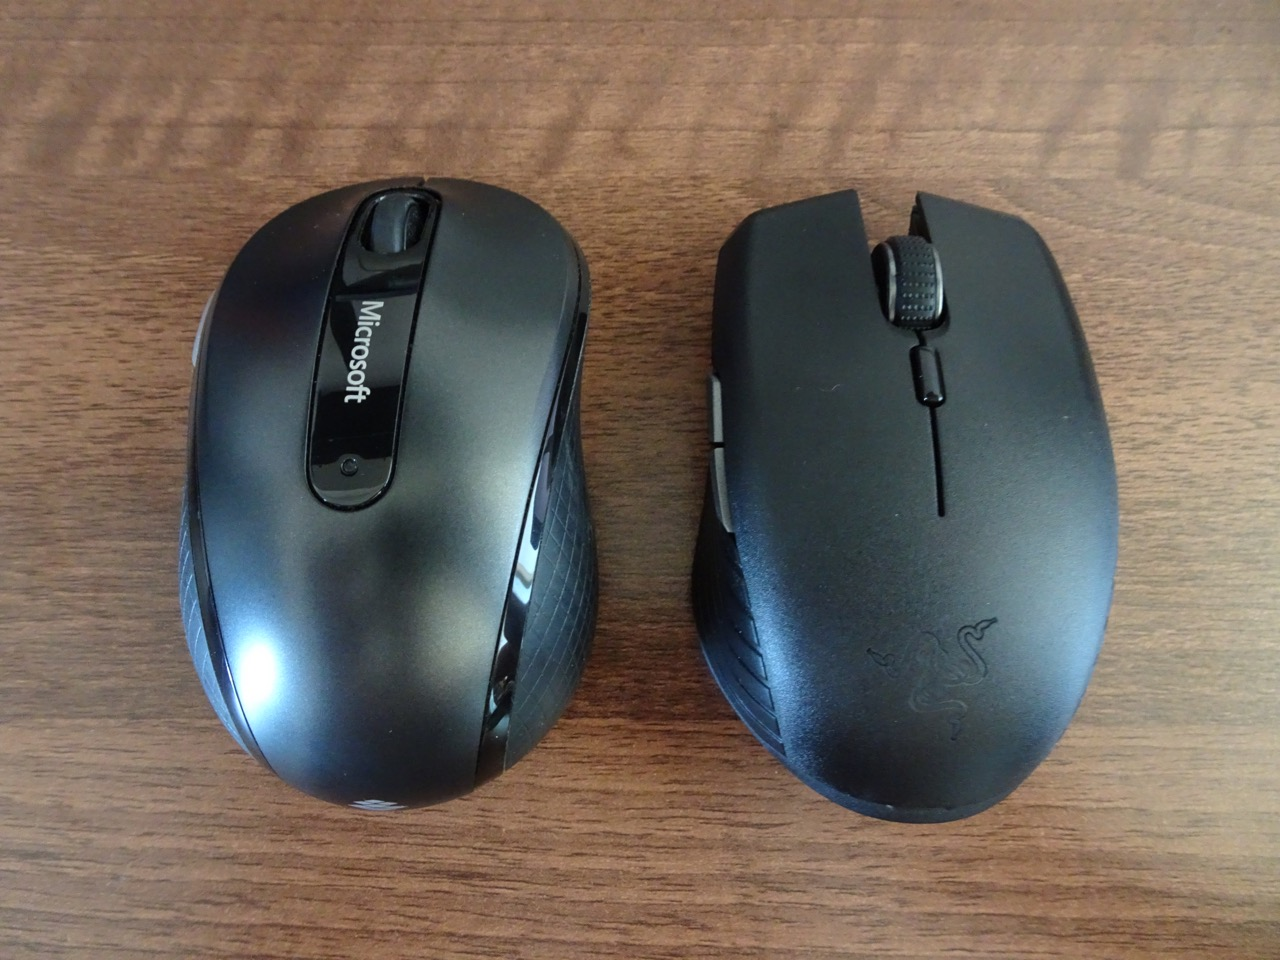 Razer Atheris mouse - disappointment with terrible Bluetooth